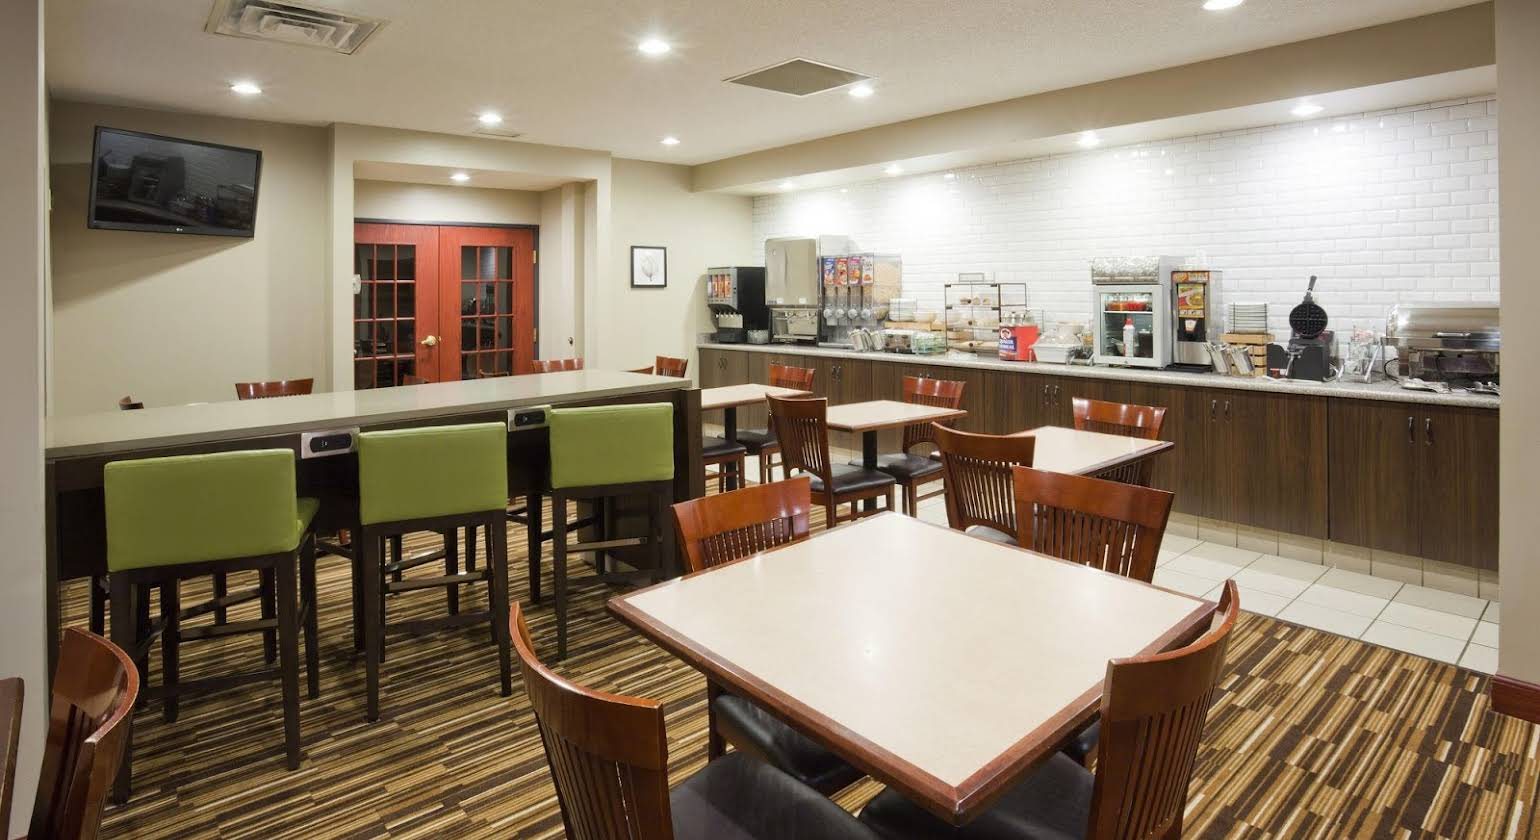 Country Inn & Suites by Radisson Willmar